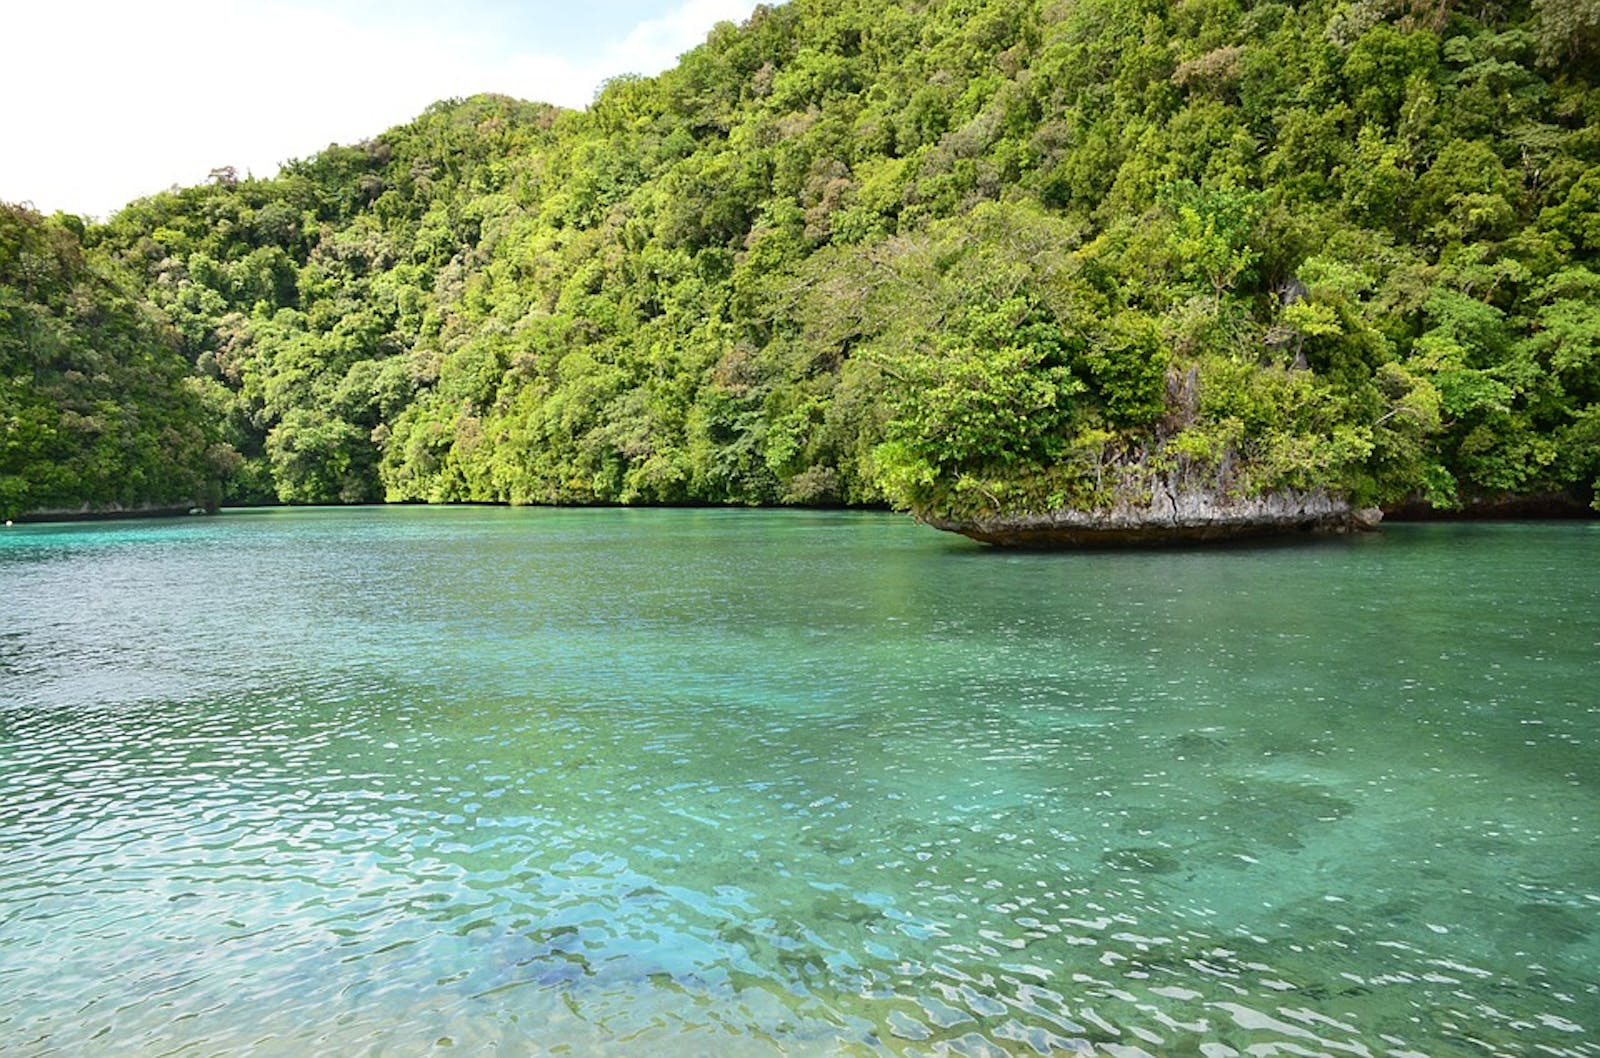 Palau Tropical Moist Forests